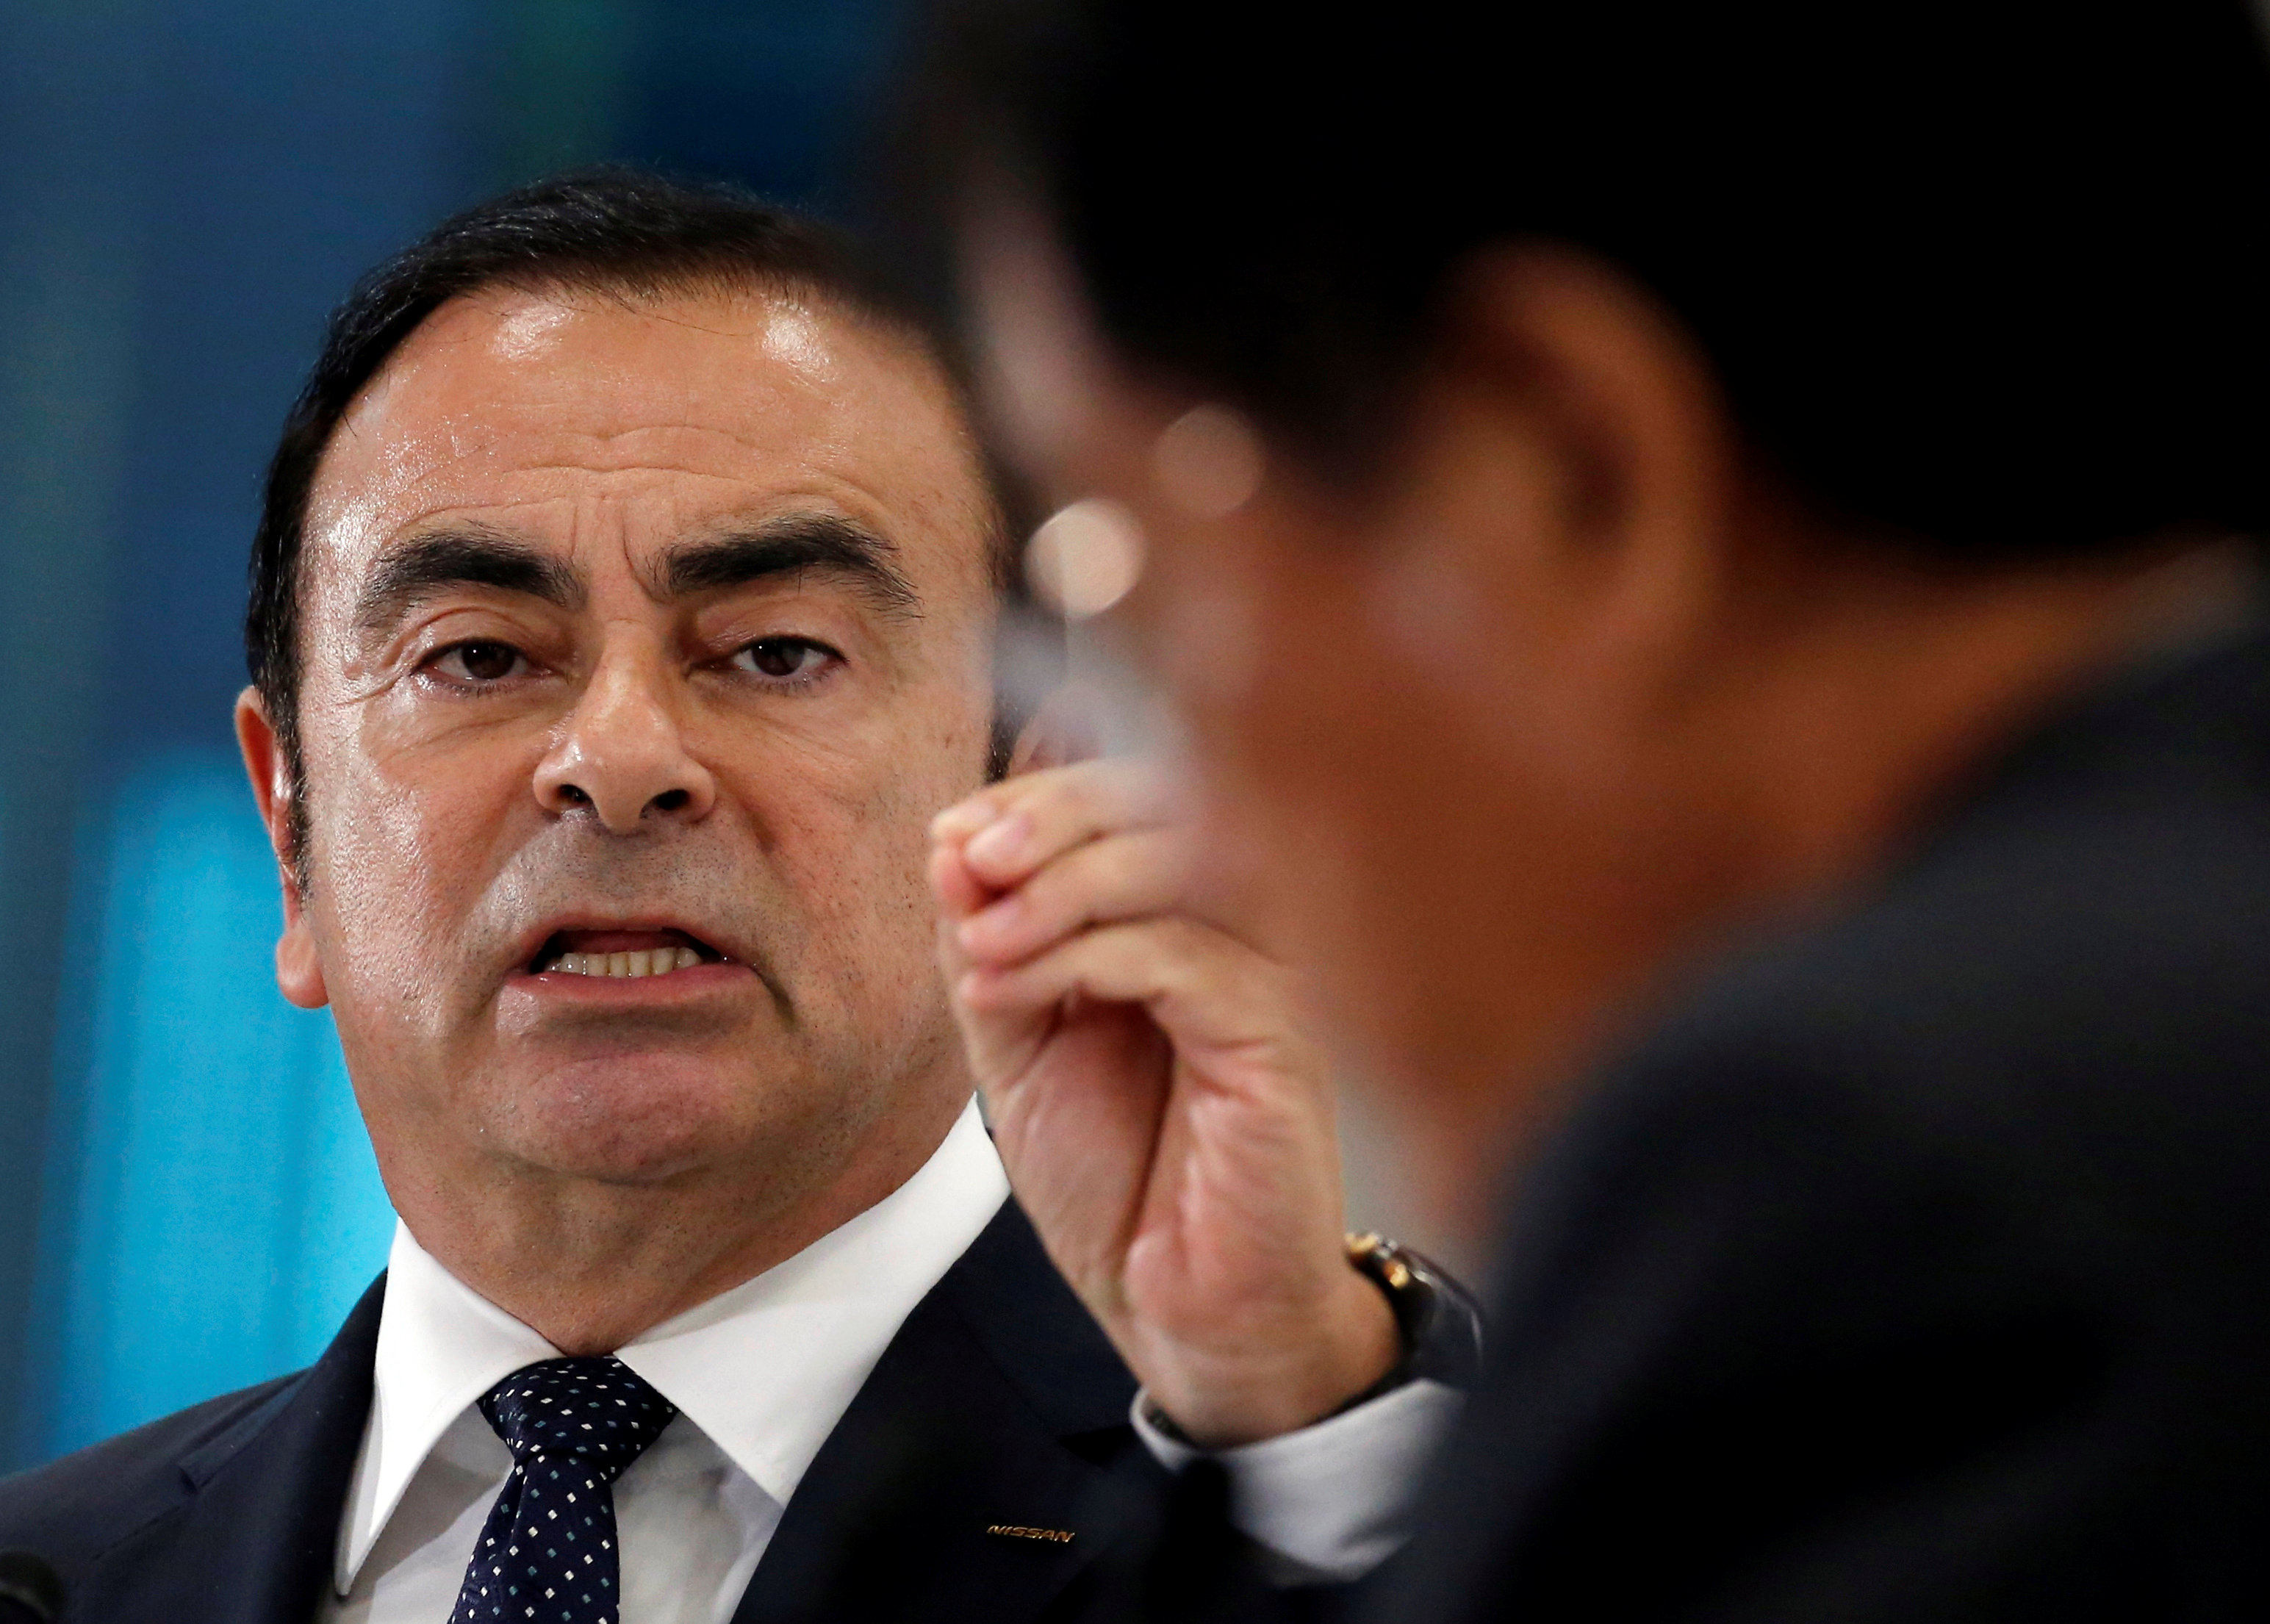 Ghosn, Chairman and CEO of the Renault-Nissan Alliance and Mitsubishi Motors Corp's Chairman and CEO Masuko attend their joint news conference in Tokyo